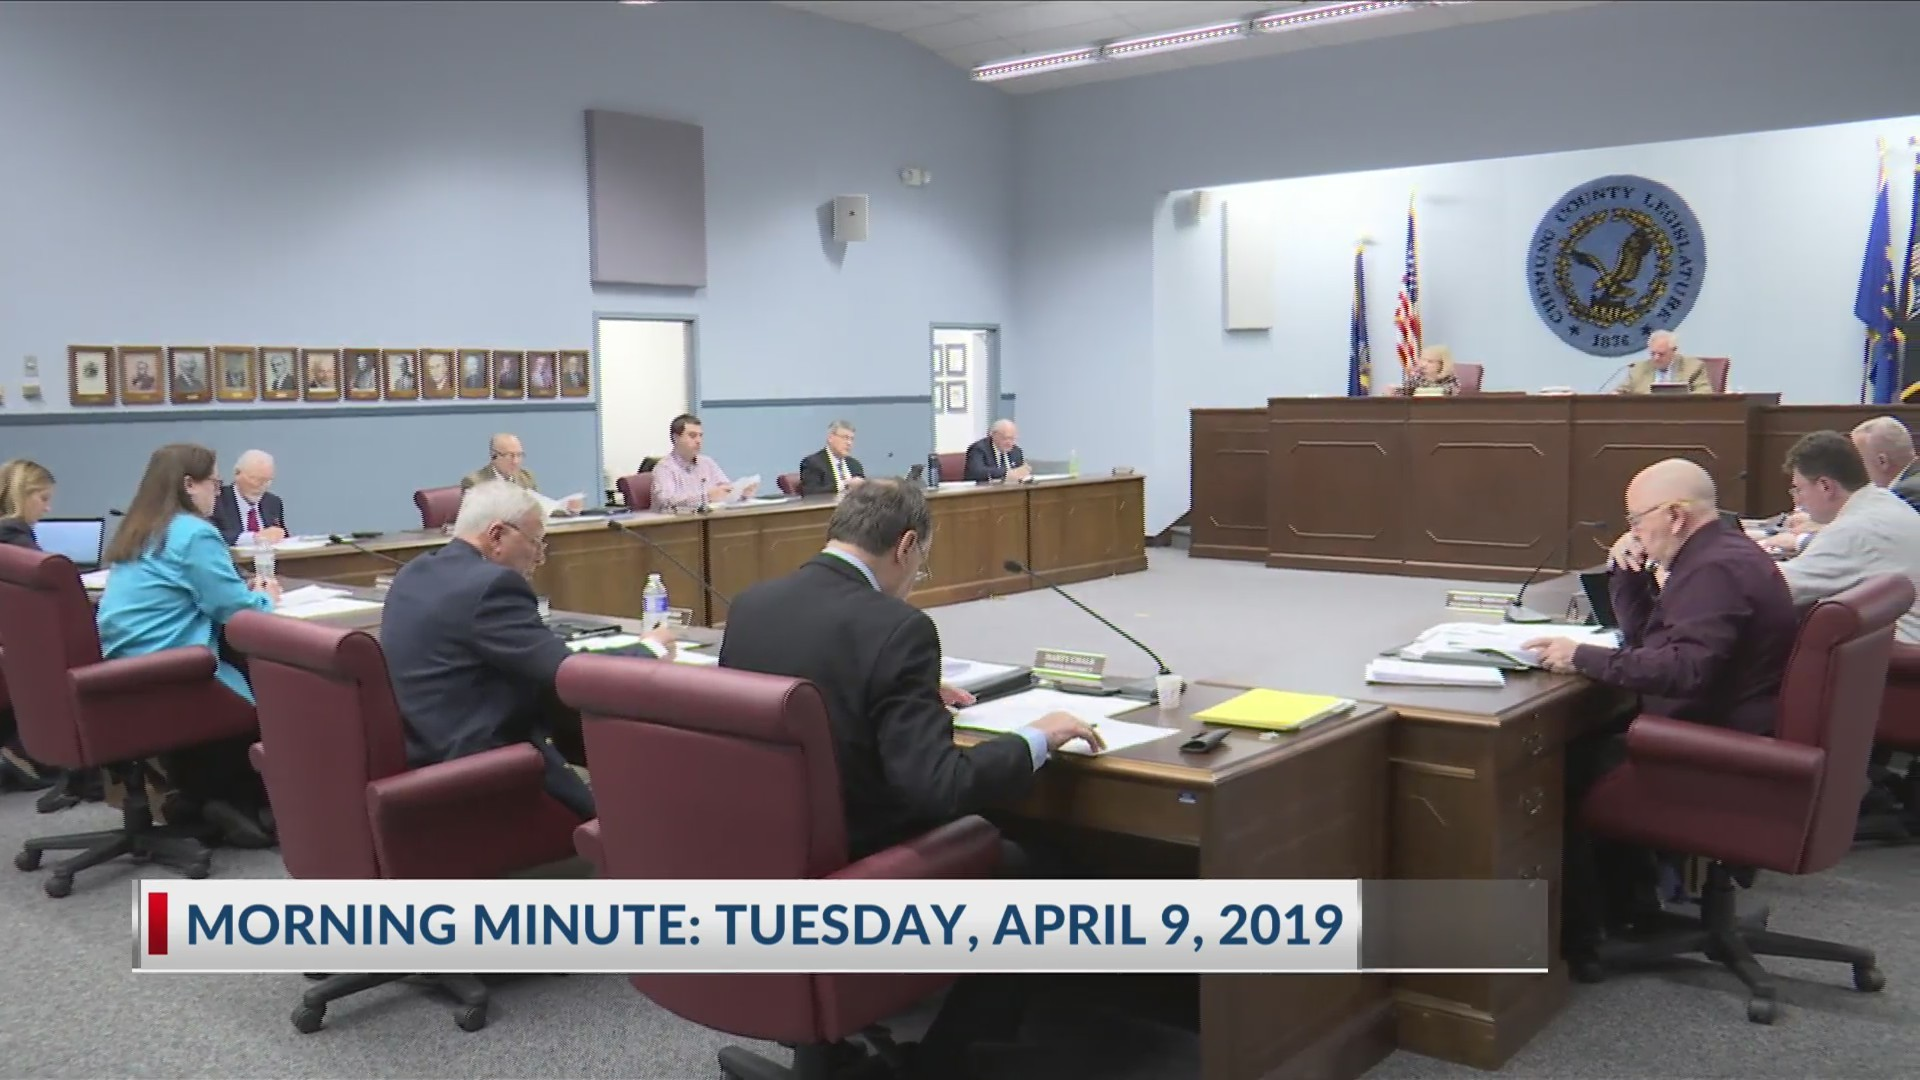 Morning Minute: Tuesday, April 9, 2019